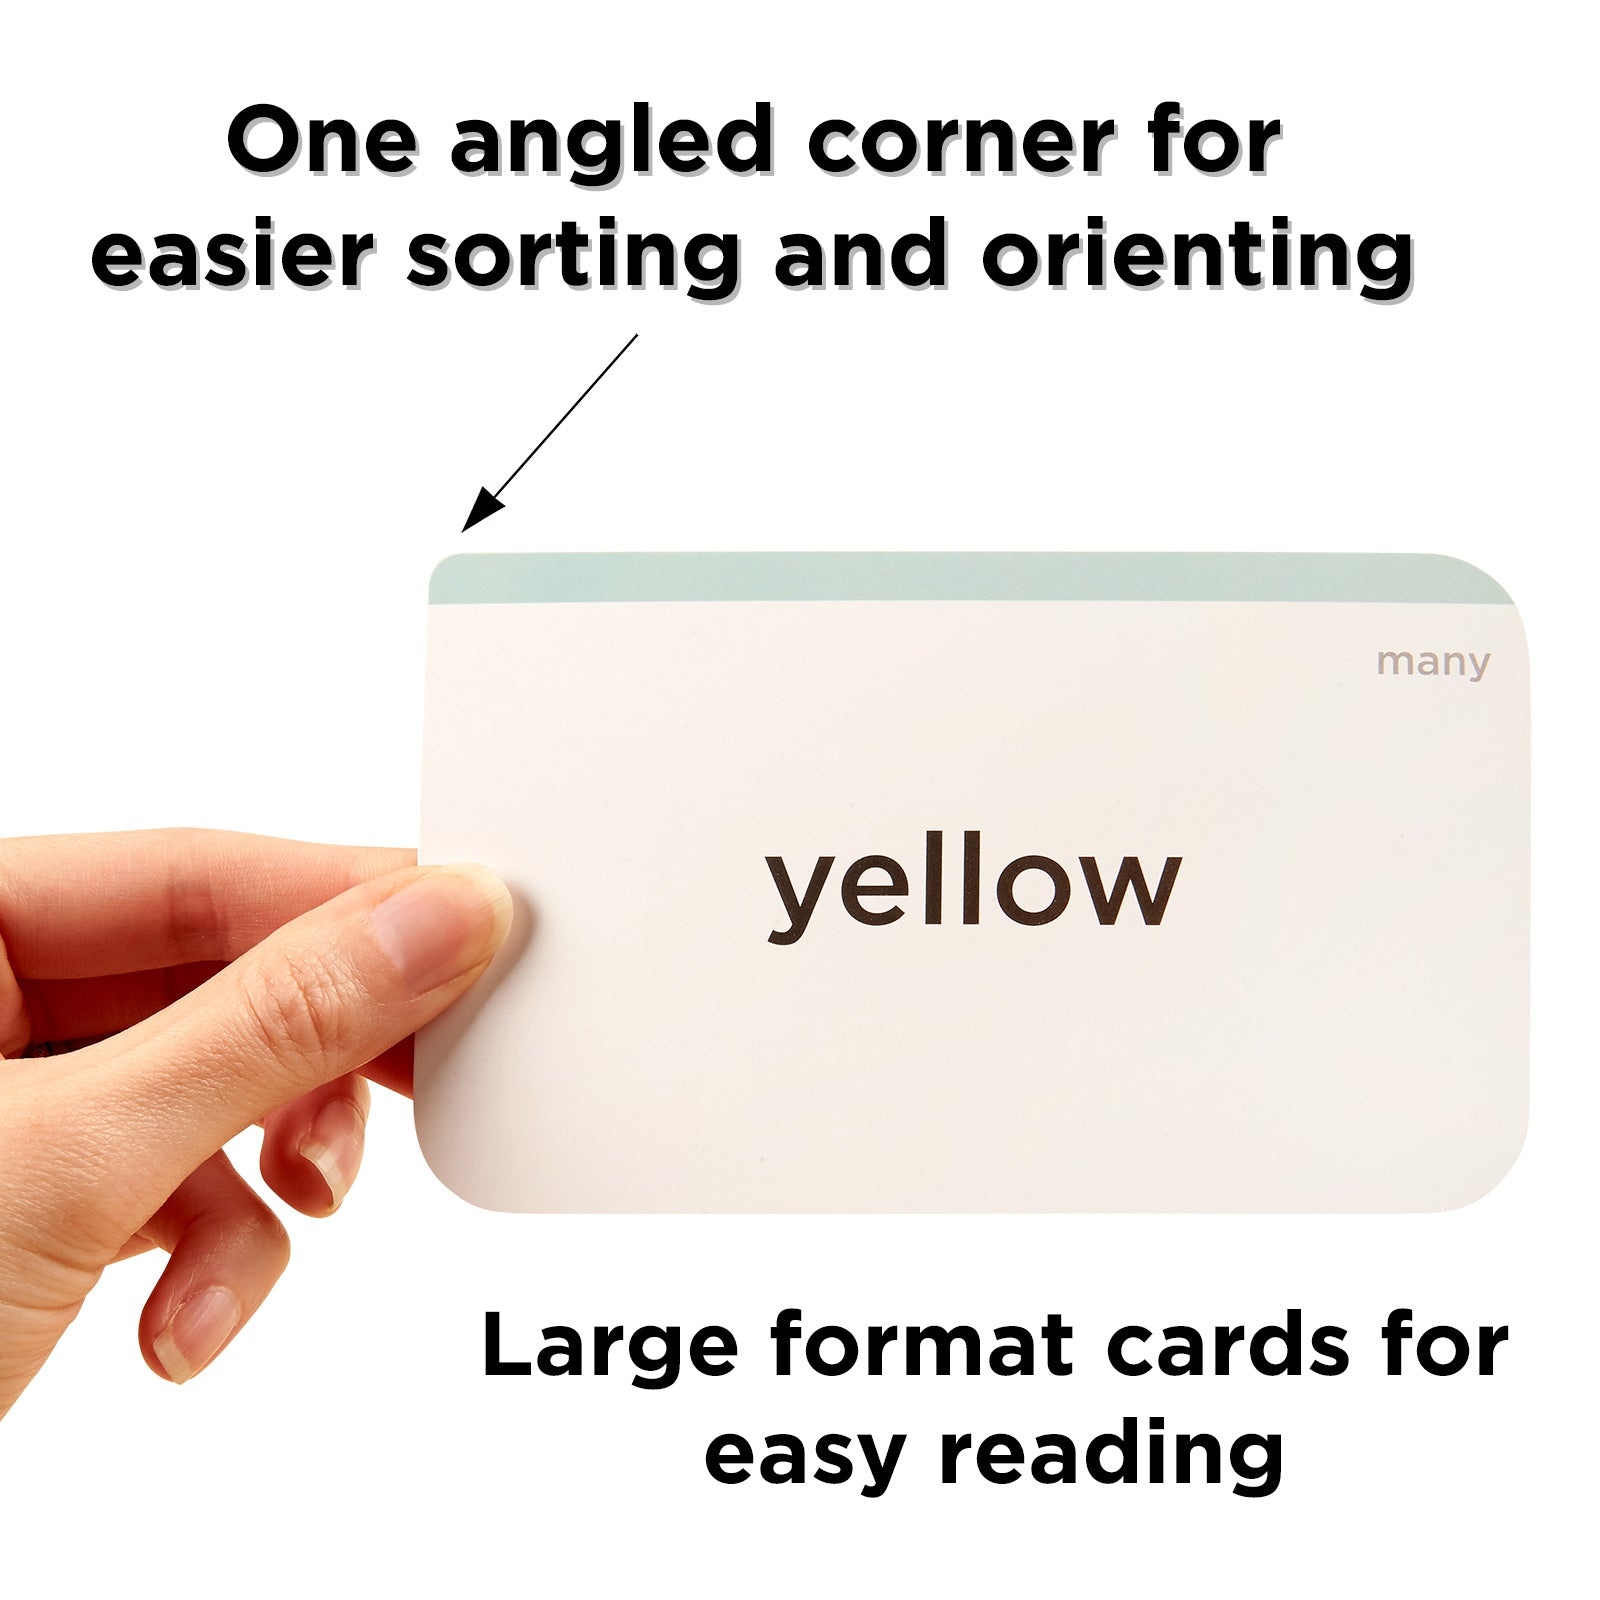 one angled corner for easier sorting and orienting large format flash cards for easy reading